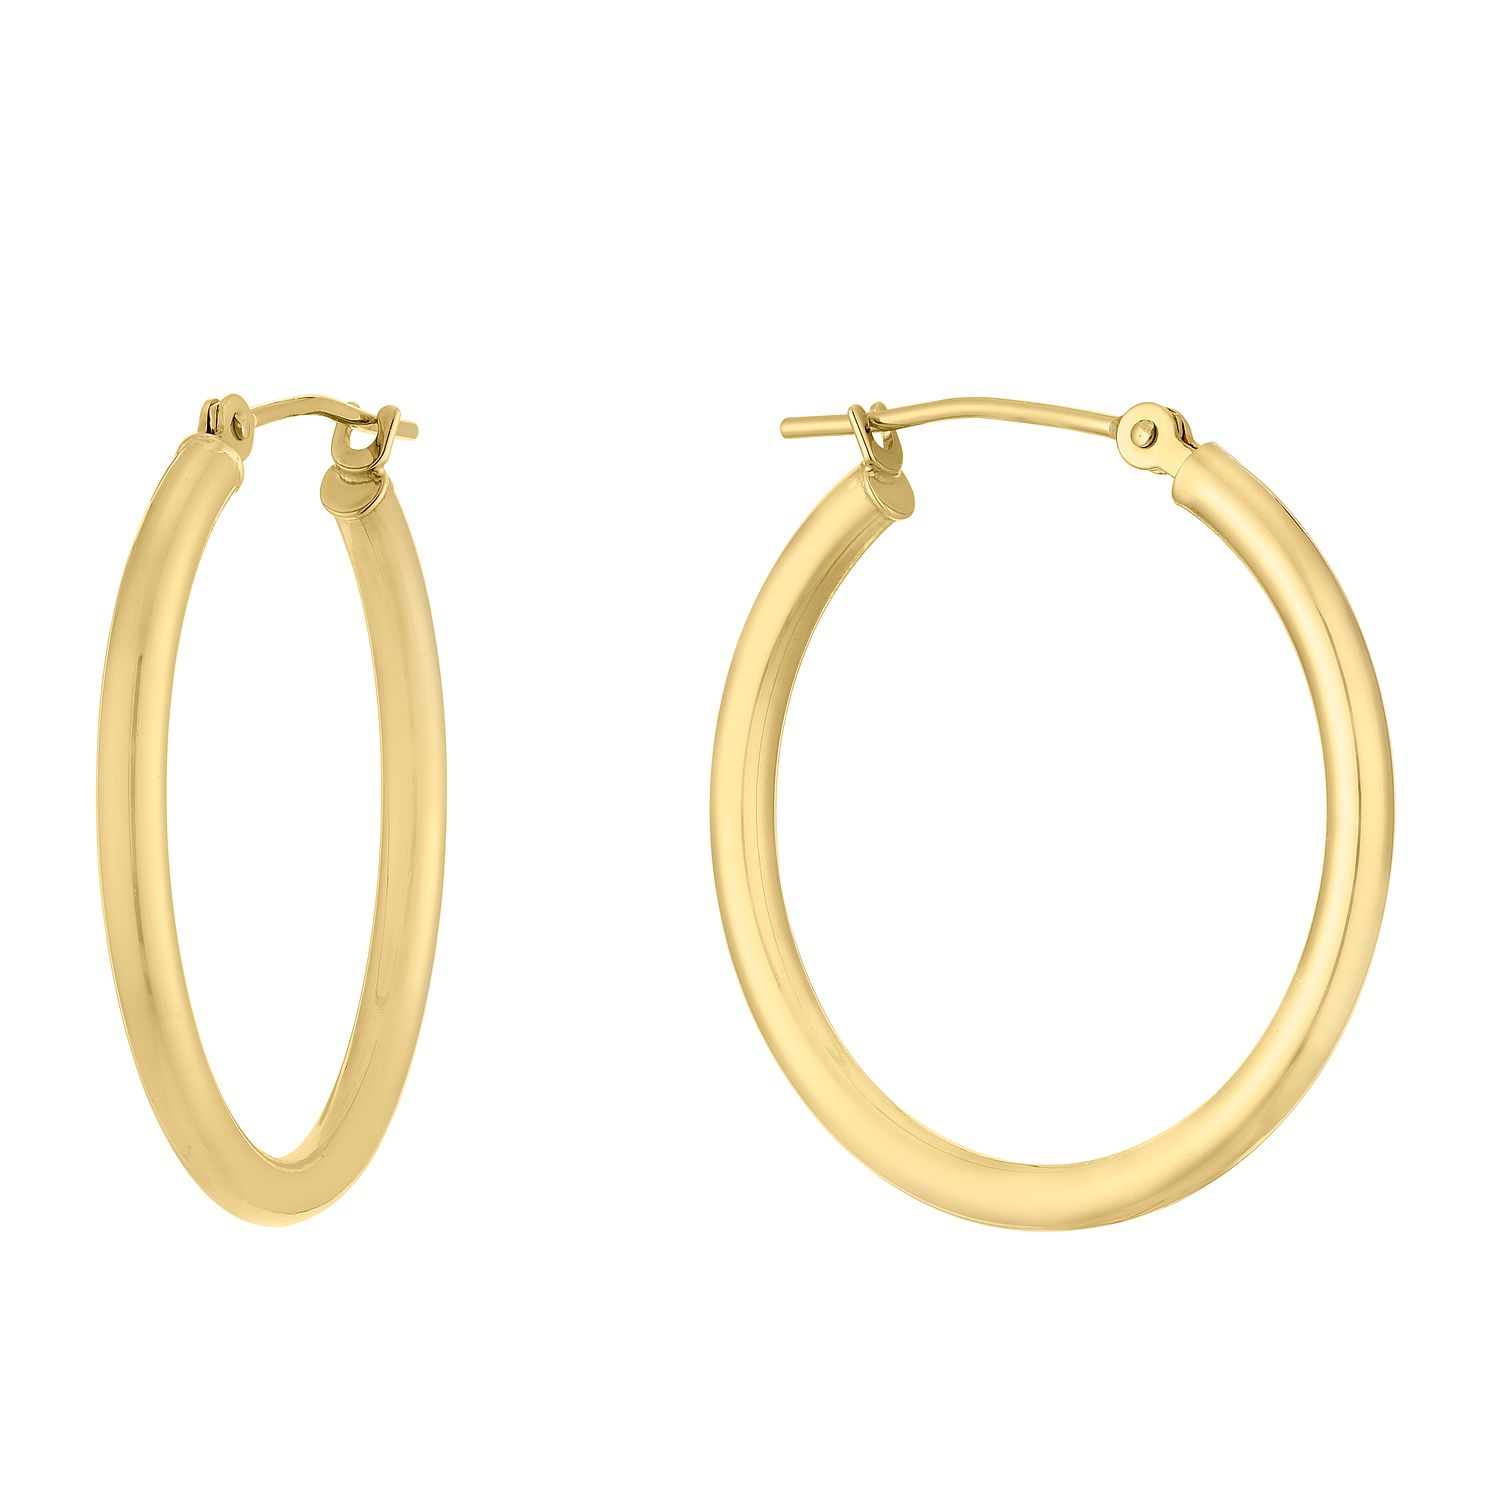 9ct Yellow Gold 20mm Hoop Earrings - Product number 9791000